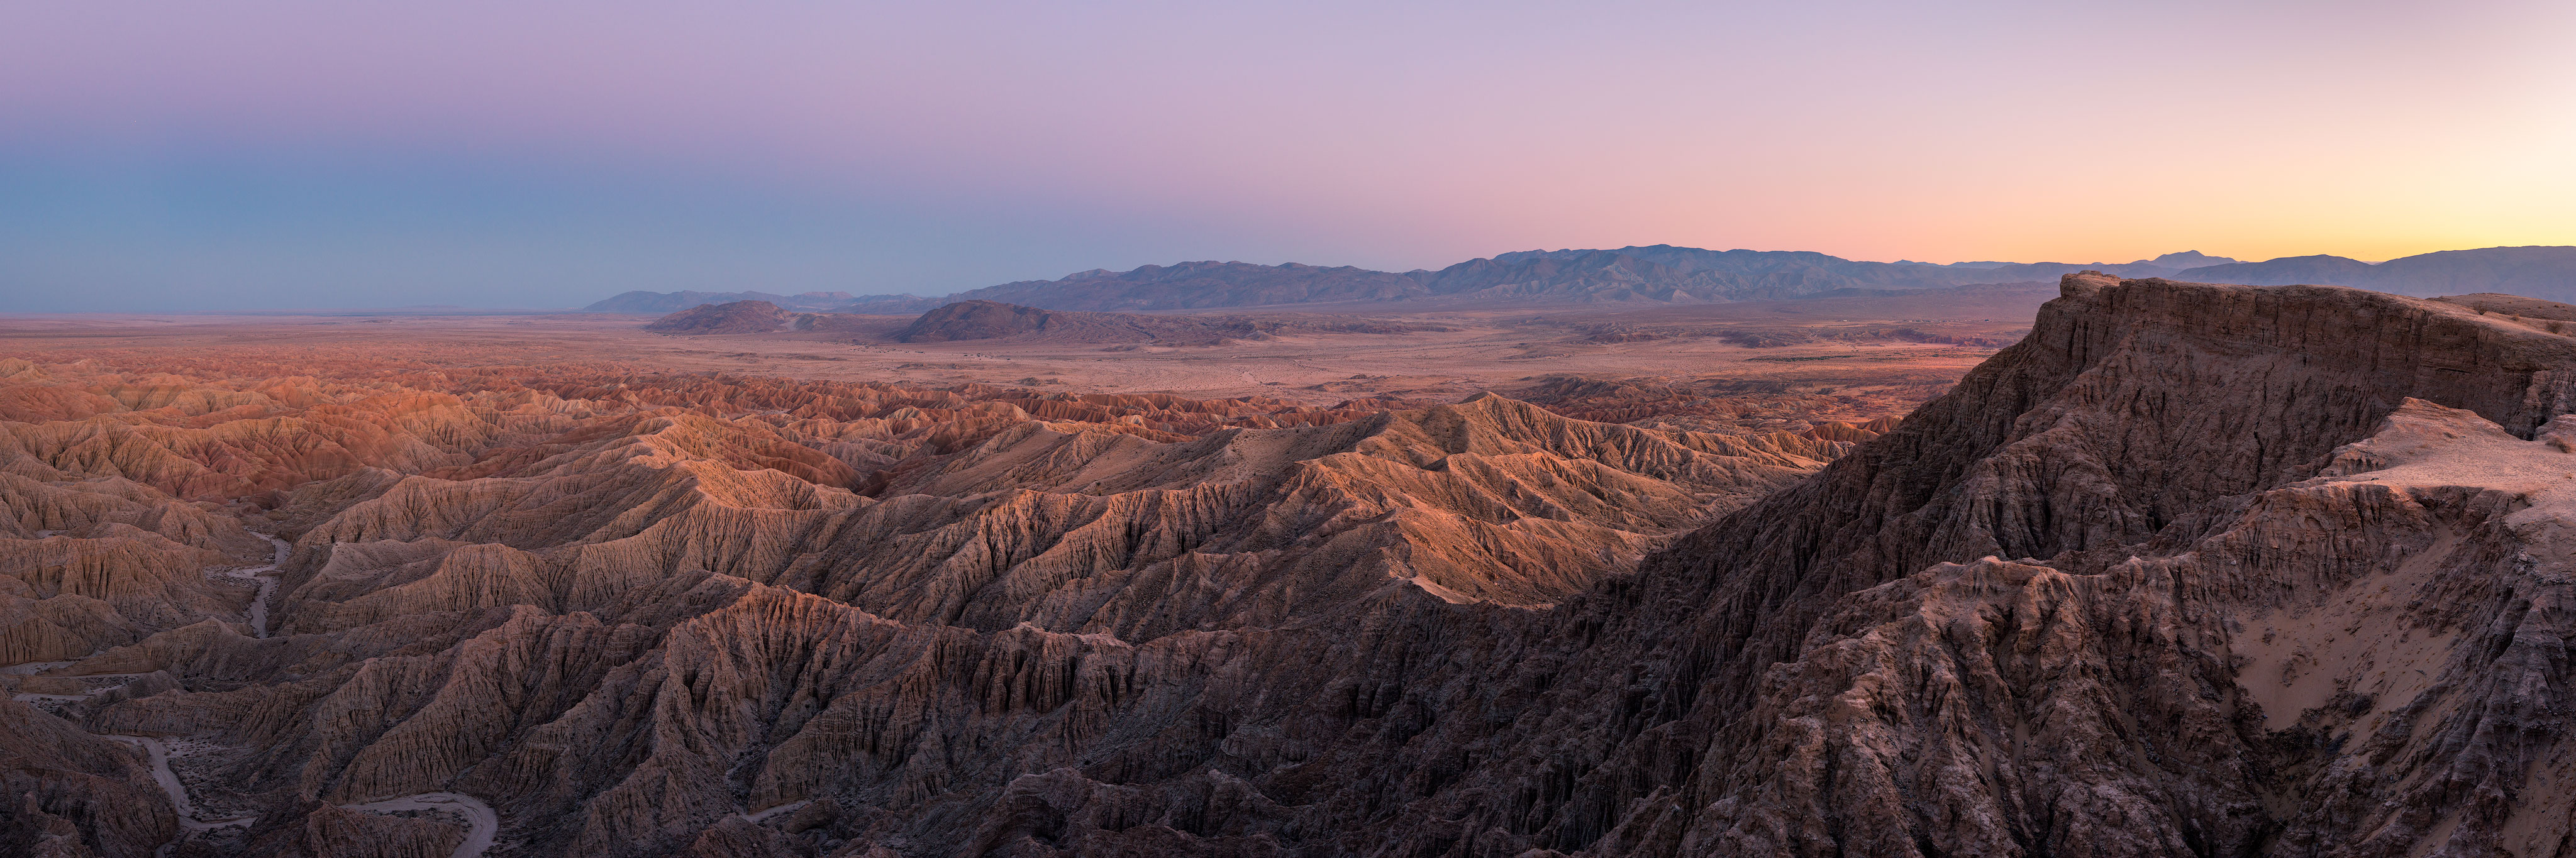 NATURE FINE ART LIMITED EDITION OF 100 Anza-Borrego Desert State Park (ABDSP) is a California state park located within the Colorado...